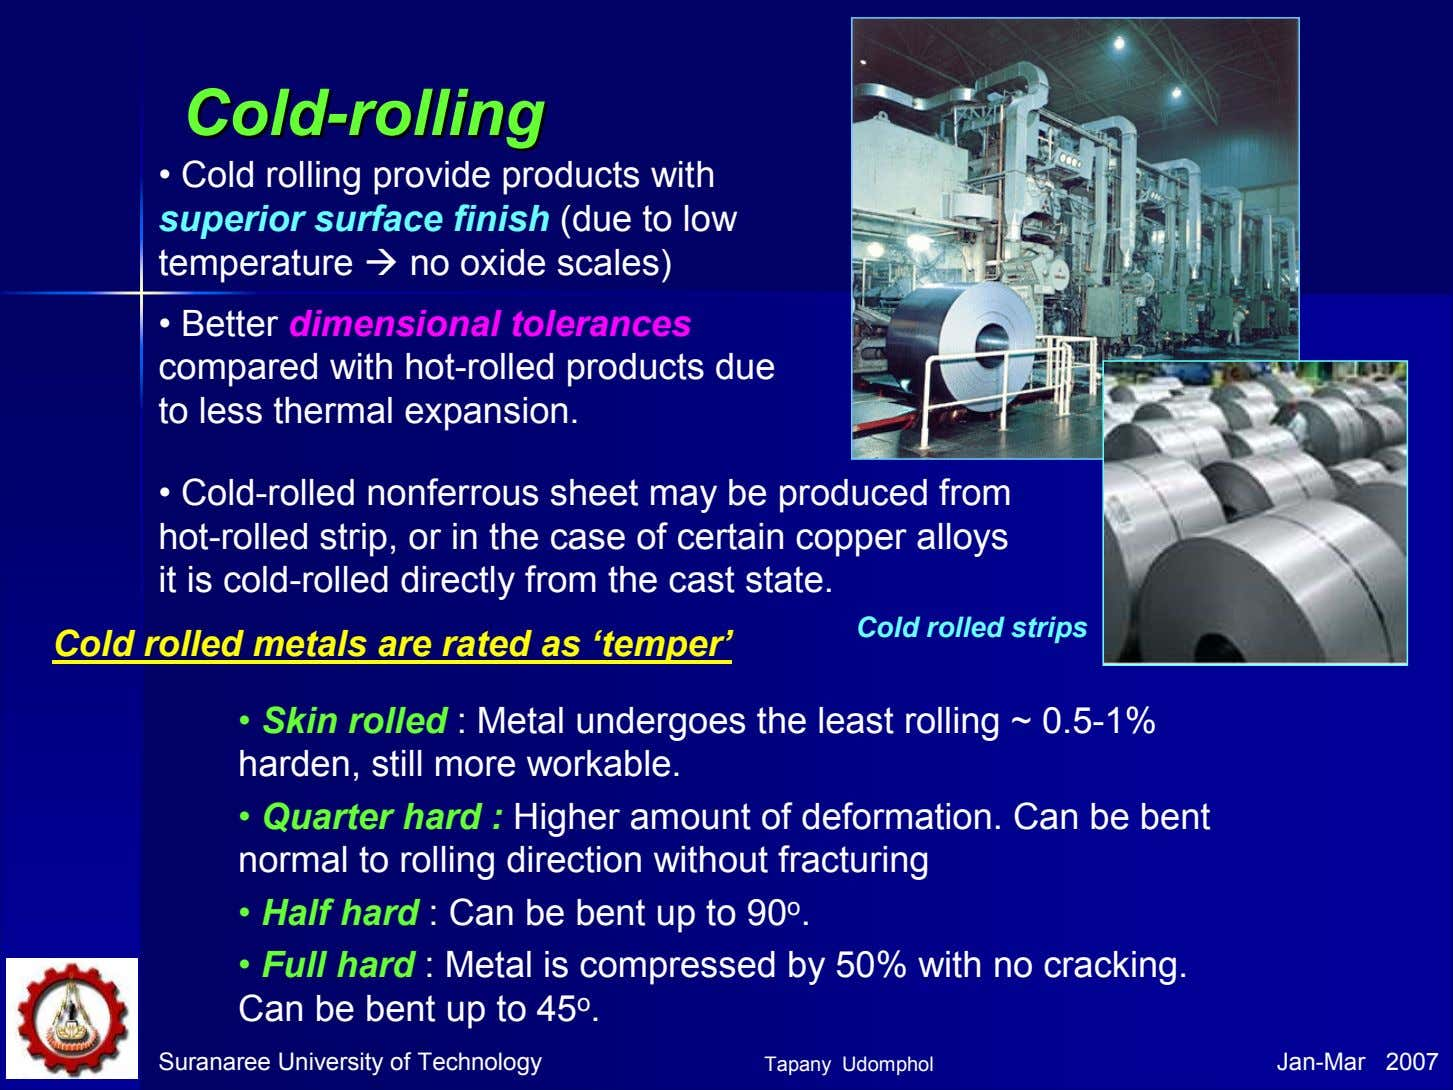 ColdCold--rollingrolling • Cold rolling provide products with superior surface finish (due to low temperature no